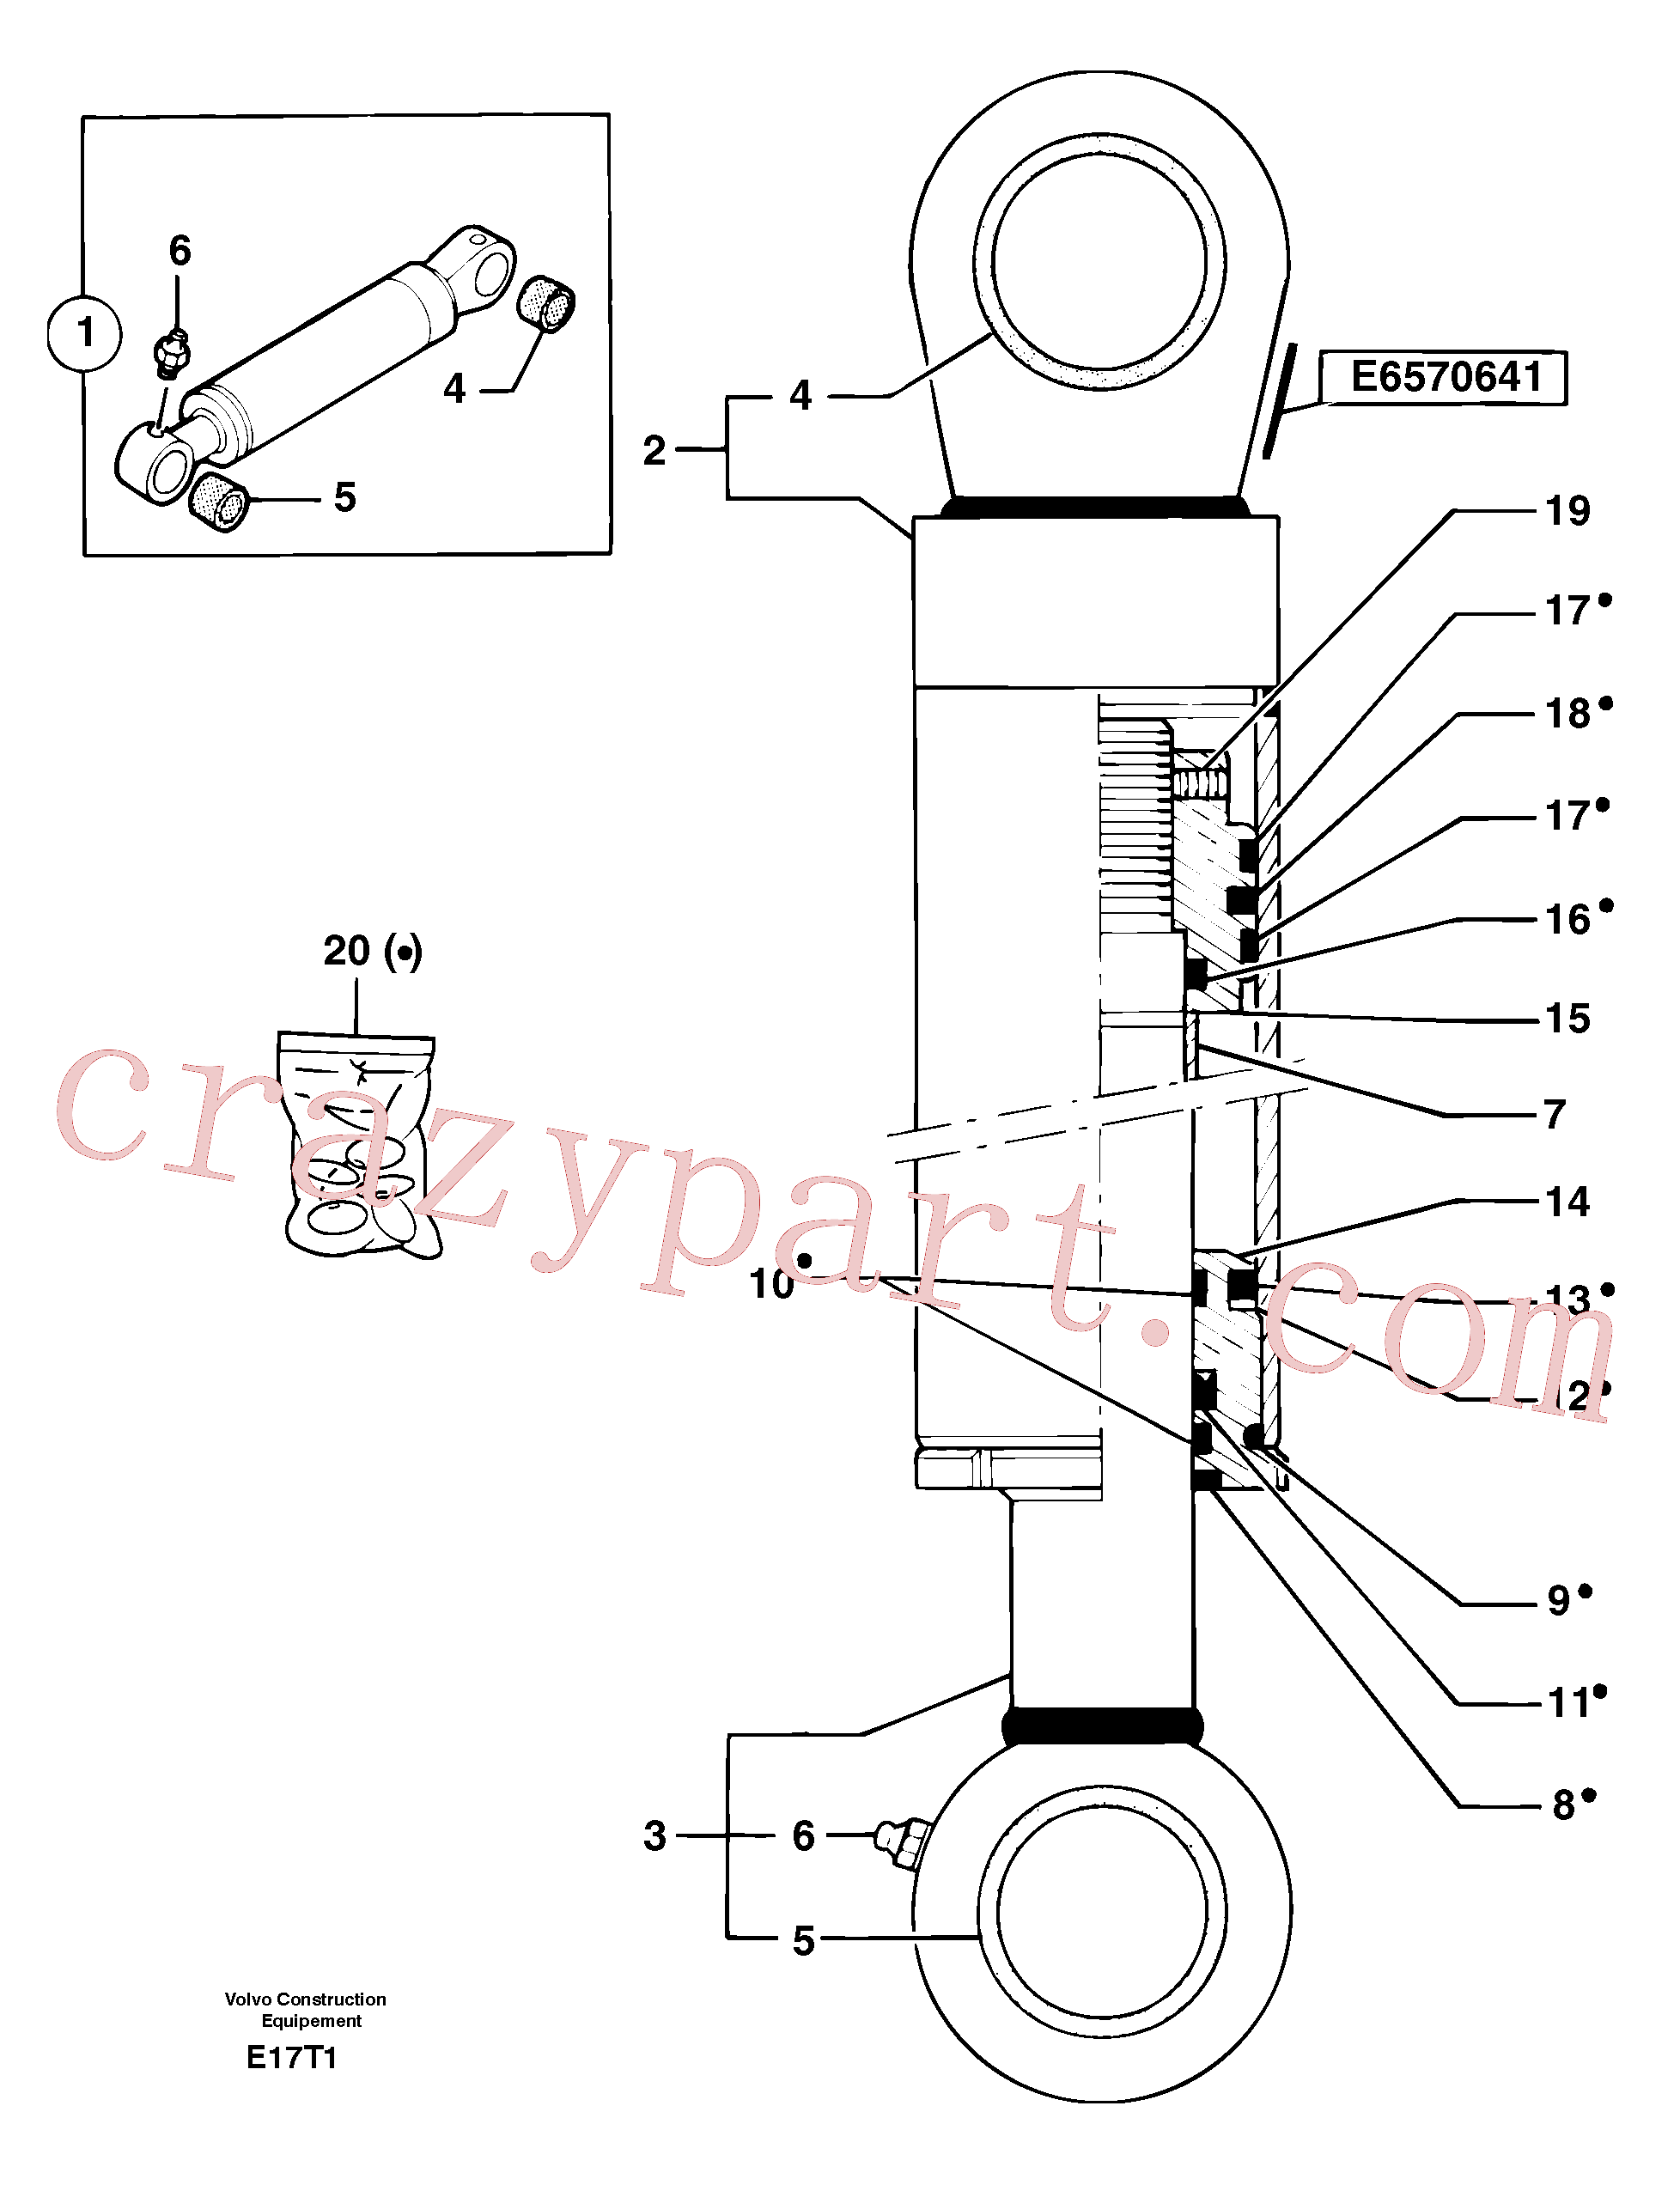 PJ7412487 for Volvo Boom offset cylinder(E17T1 assembly)